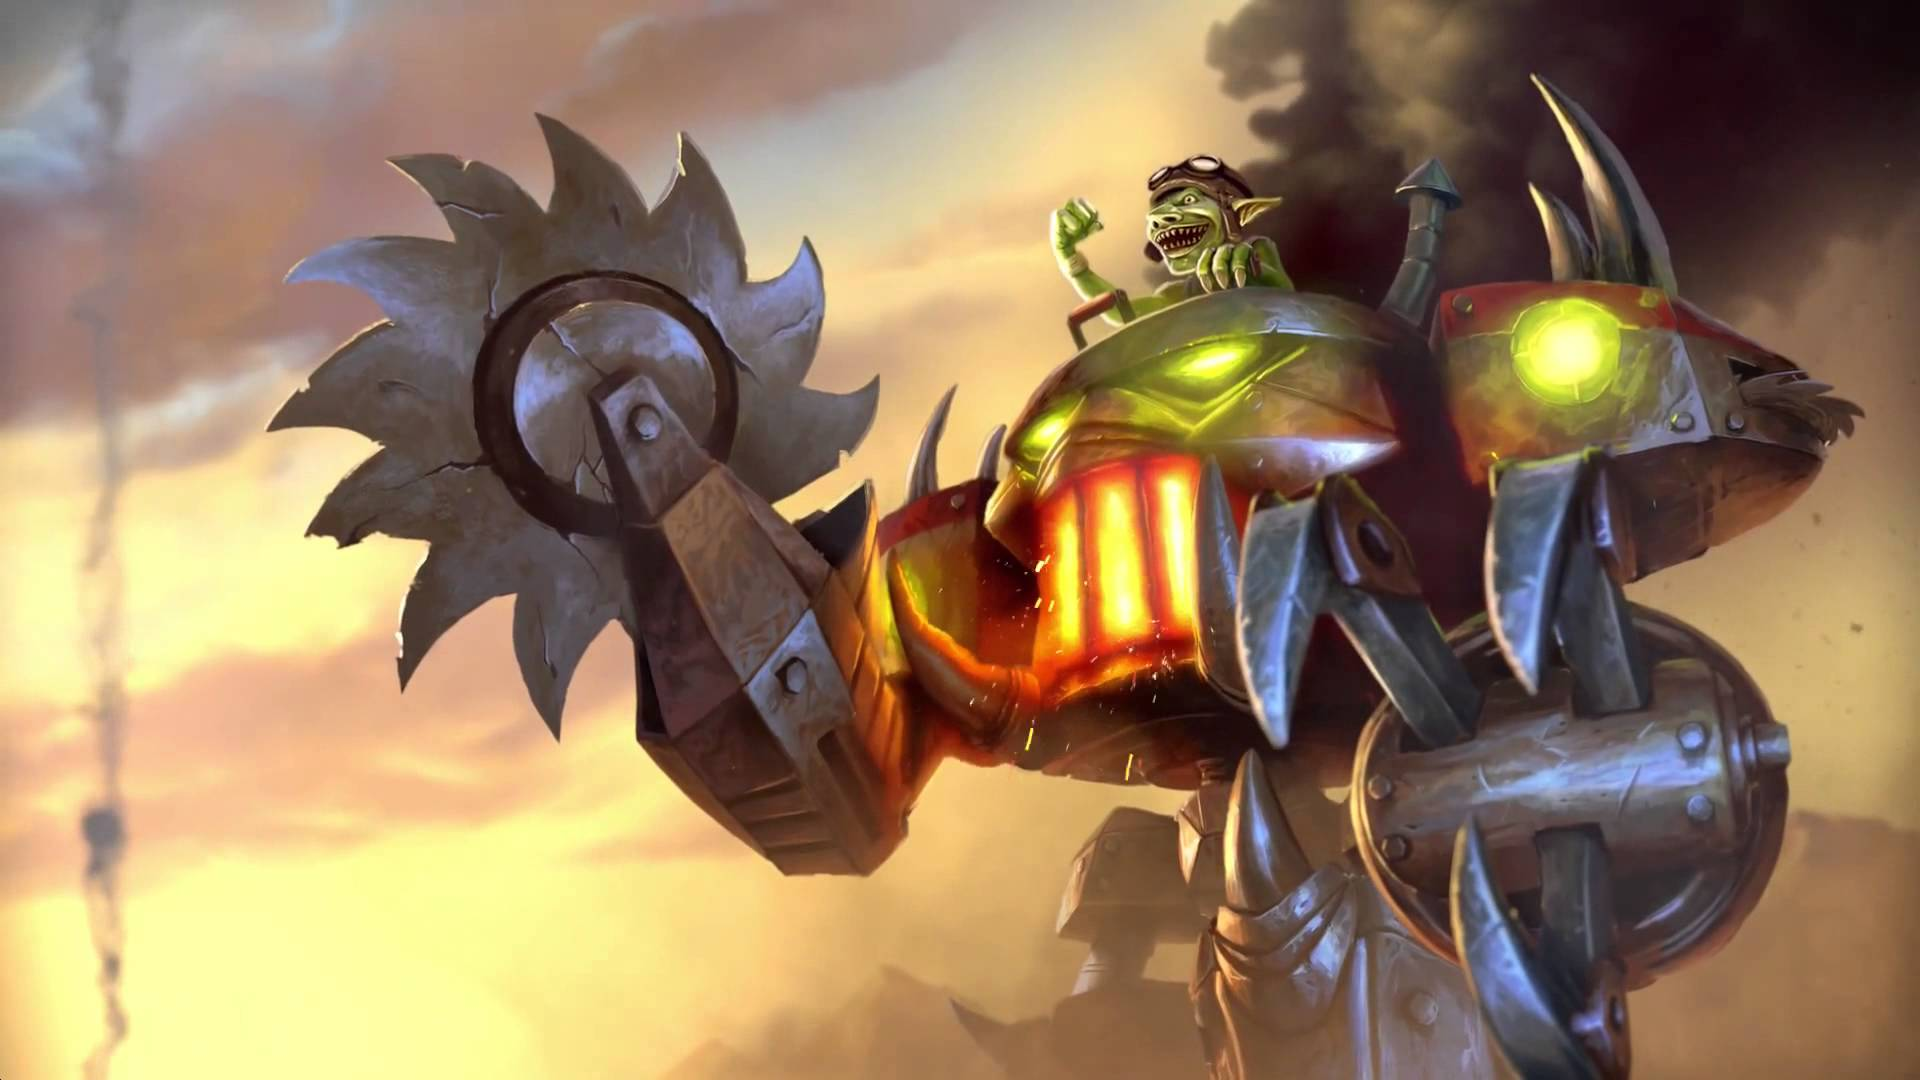 Hearthstone: Goblins Vs. Gnomes Wallpapers hd